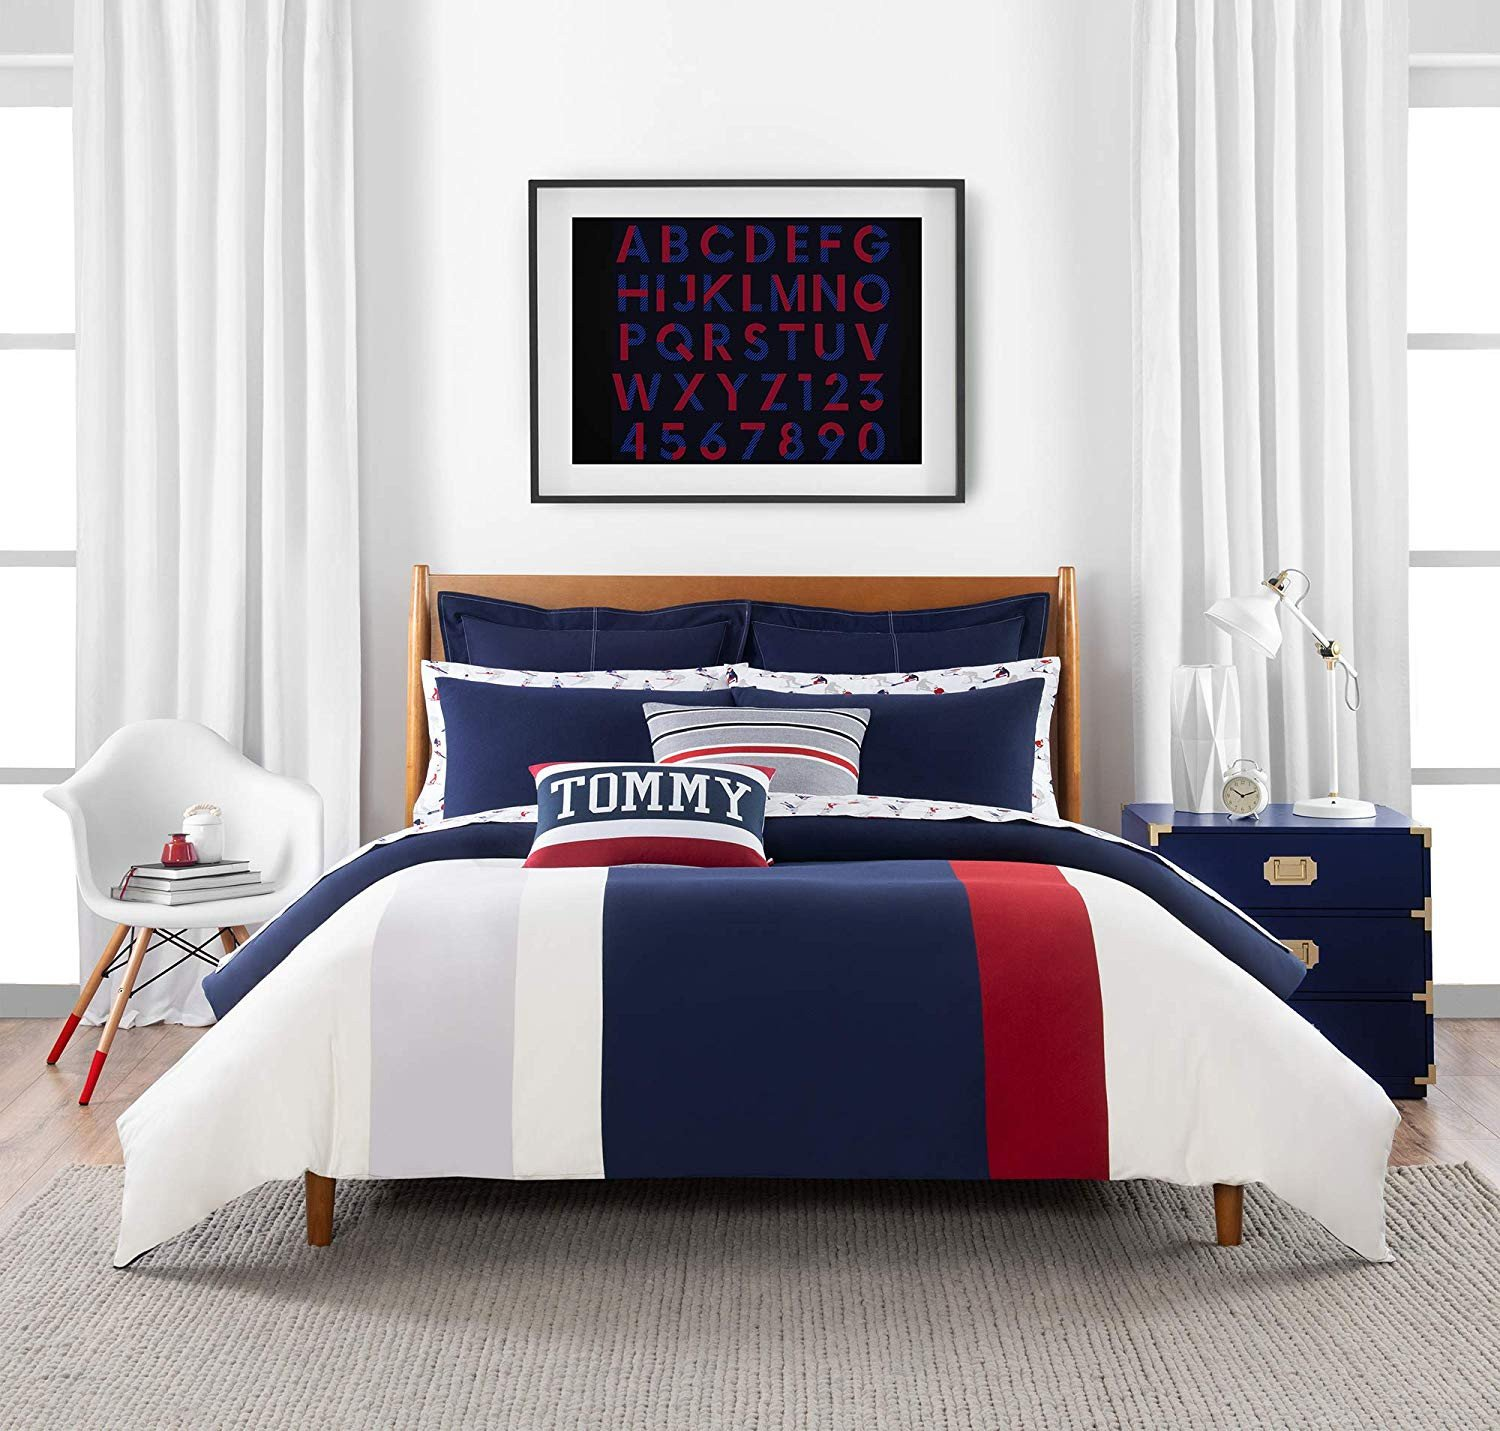 Full Bedroom Furniture Set Awesome Amazon tommy Hilfiger Clash Of 85 Stripe Bedding